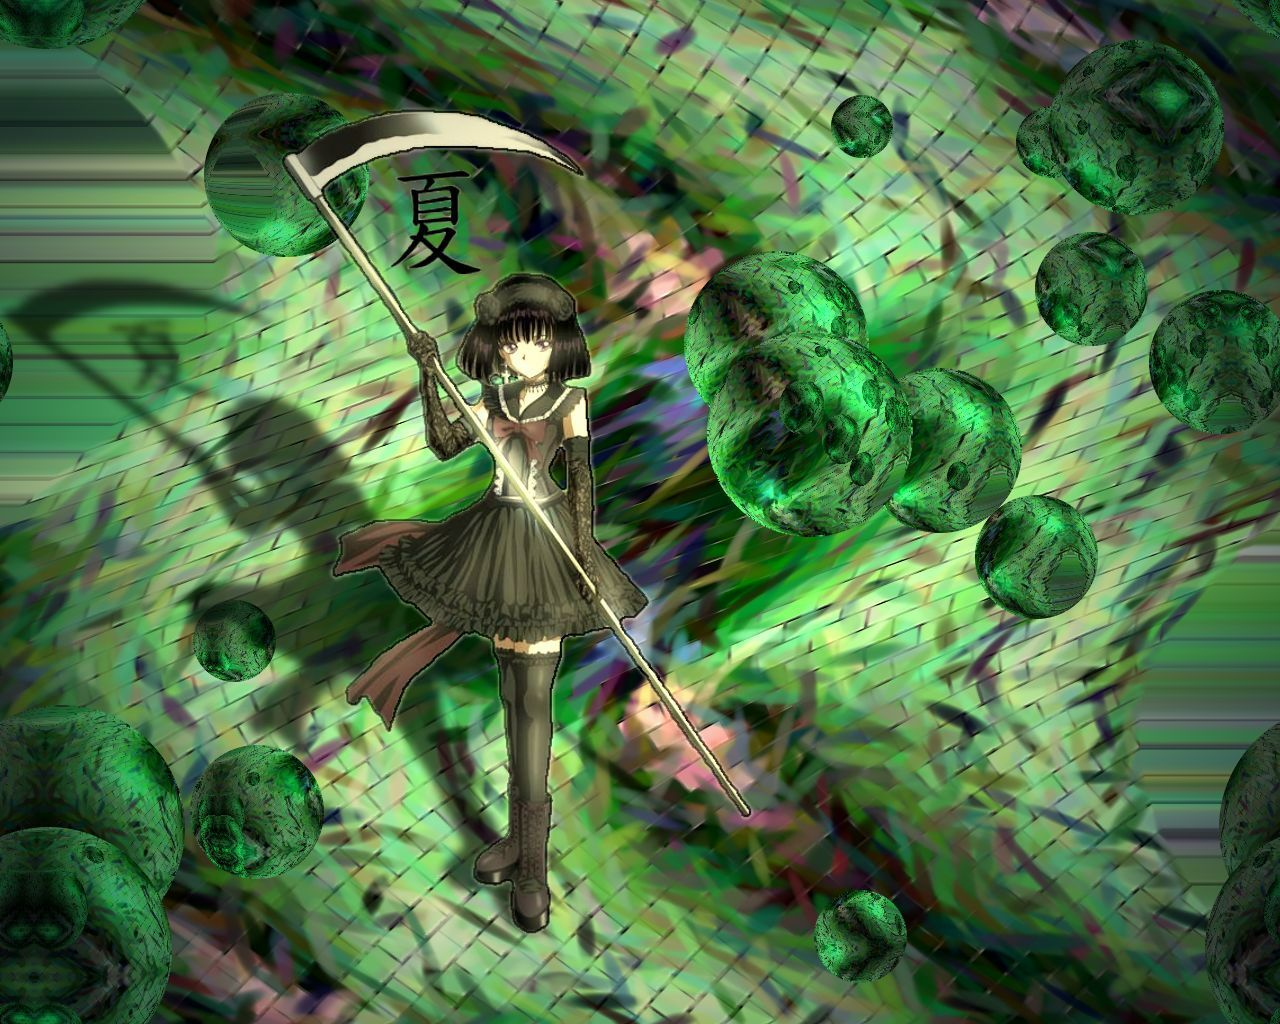 Seraph Of The End Hd Wallpapers Backgrounds Wallpaper Anime Wallpaper Wallpaper Seraph Of The End